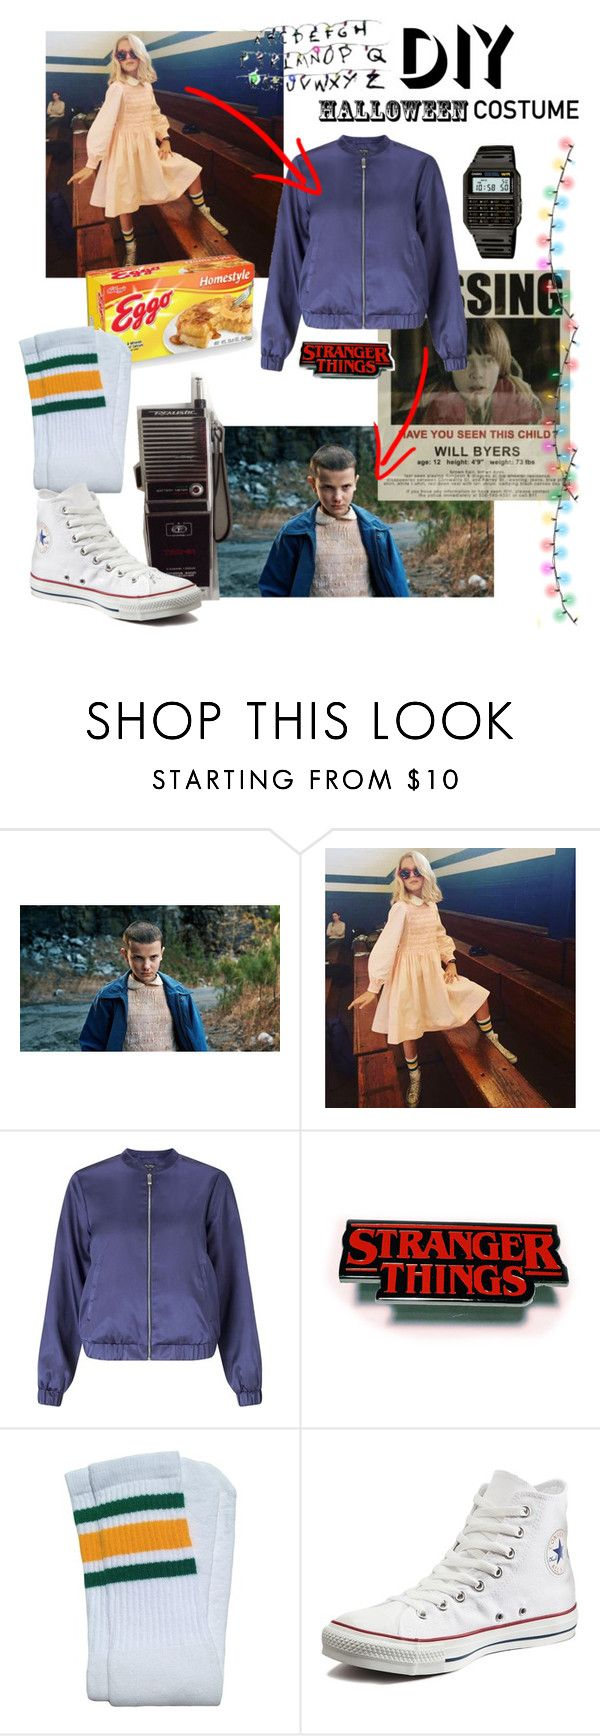 """""""The upside down"""" by bia-melo ❤ liked on Polyvore featuring Miss Selfridge, Converse, Casio, halloweencostume and DIYHalloween"""